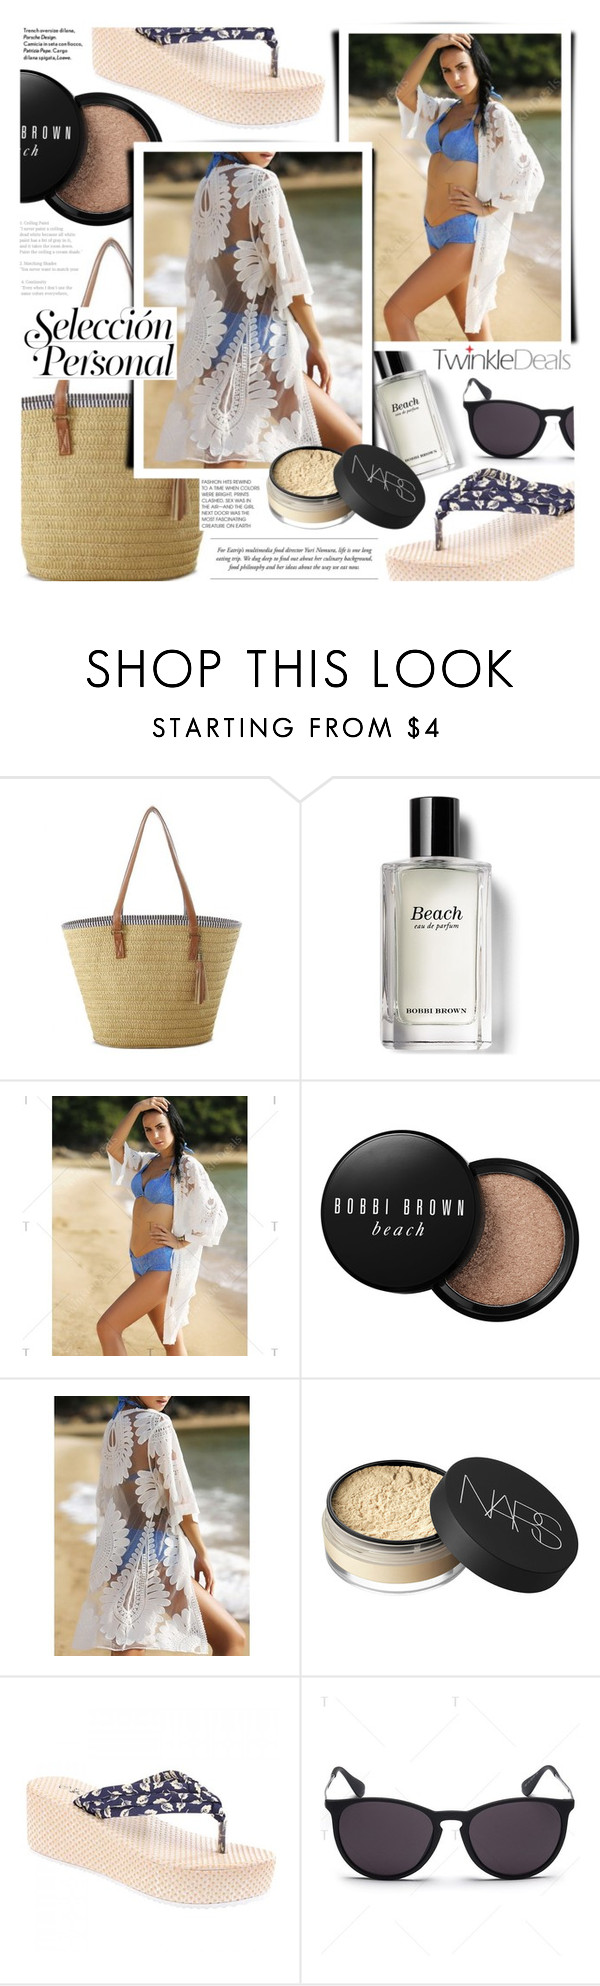 """Untitled #1510"" by noviii ❤ liked on Polyvore featuring Bobbi Brown Cosmetics, NARS Cosmetics, strawbags, beachlook and twinkledeals"